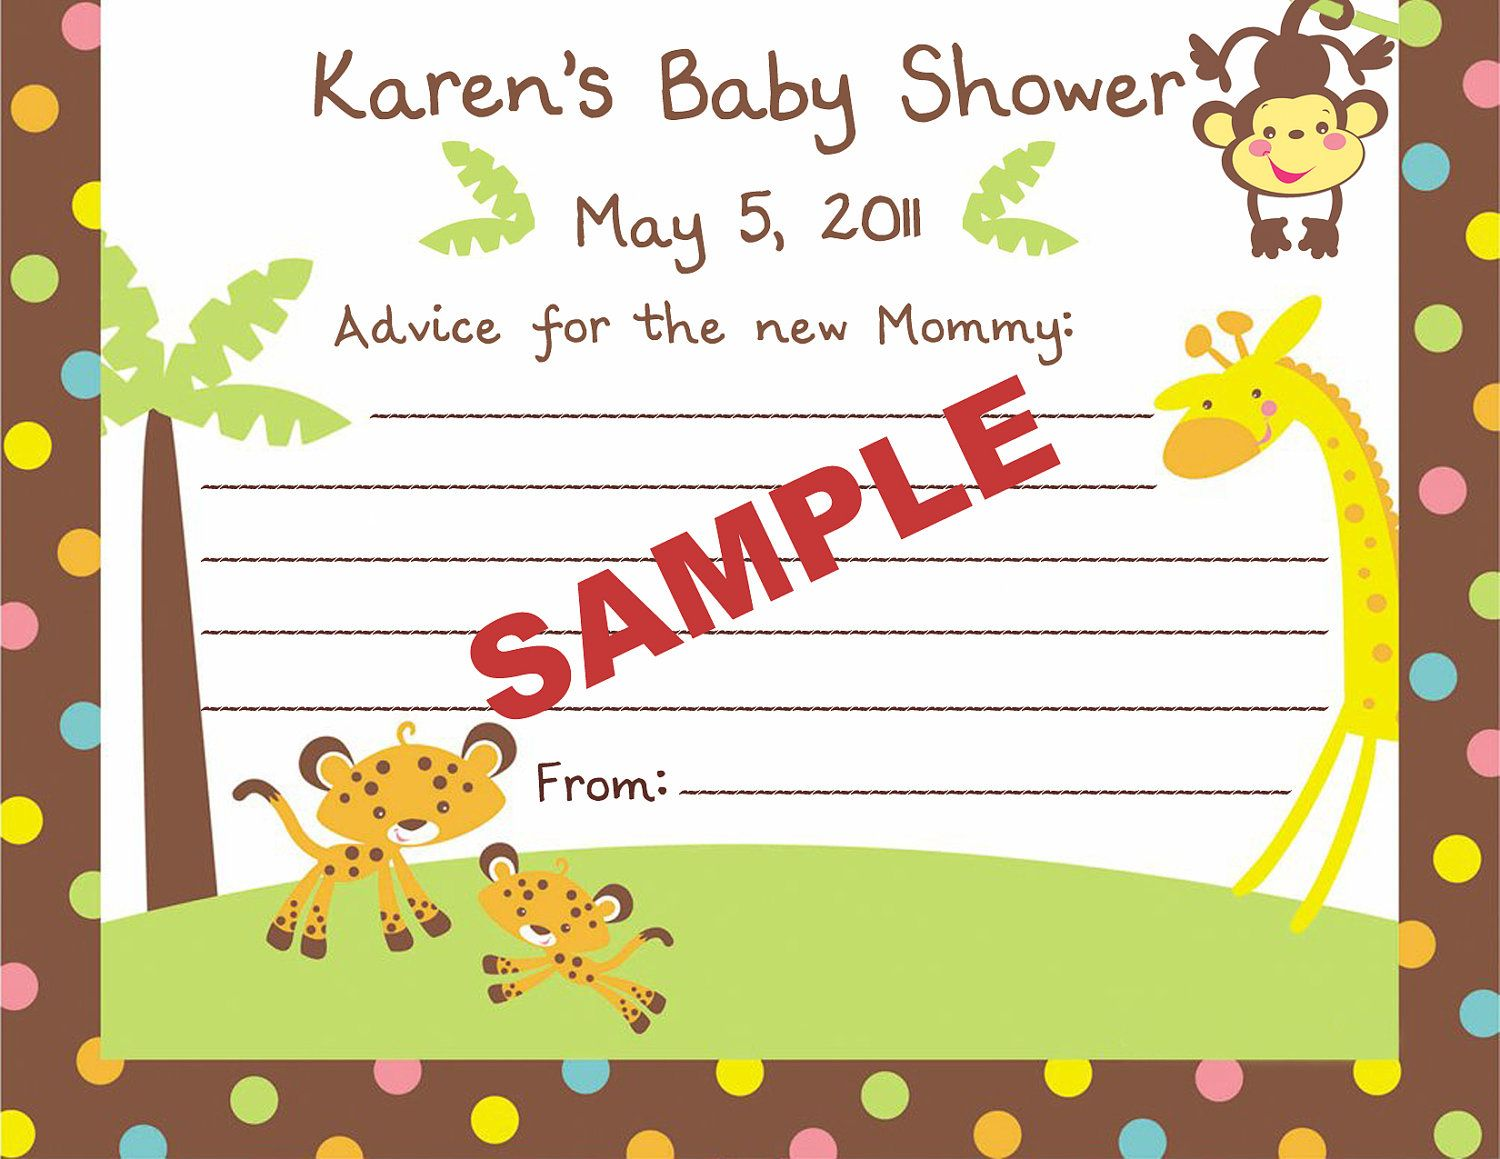 24 Printed Personalized Fisher Price Safari Jungle Baby Shower Advice  Cards. $9.99, Via Etsy